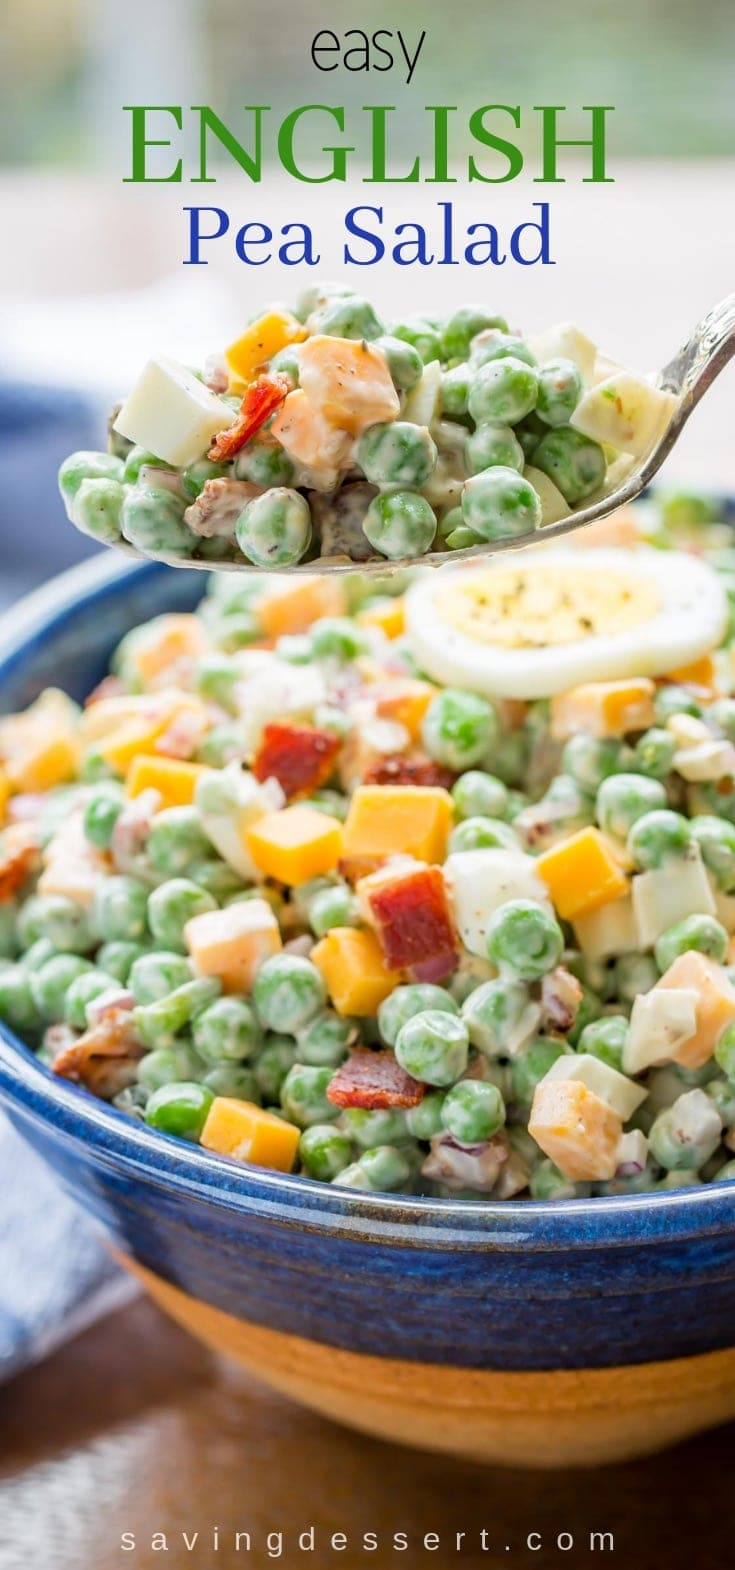 A bowl of English pea salad with peas, cheddar cheese, bacon, red onion and hard boiled eggs